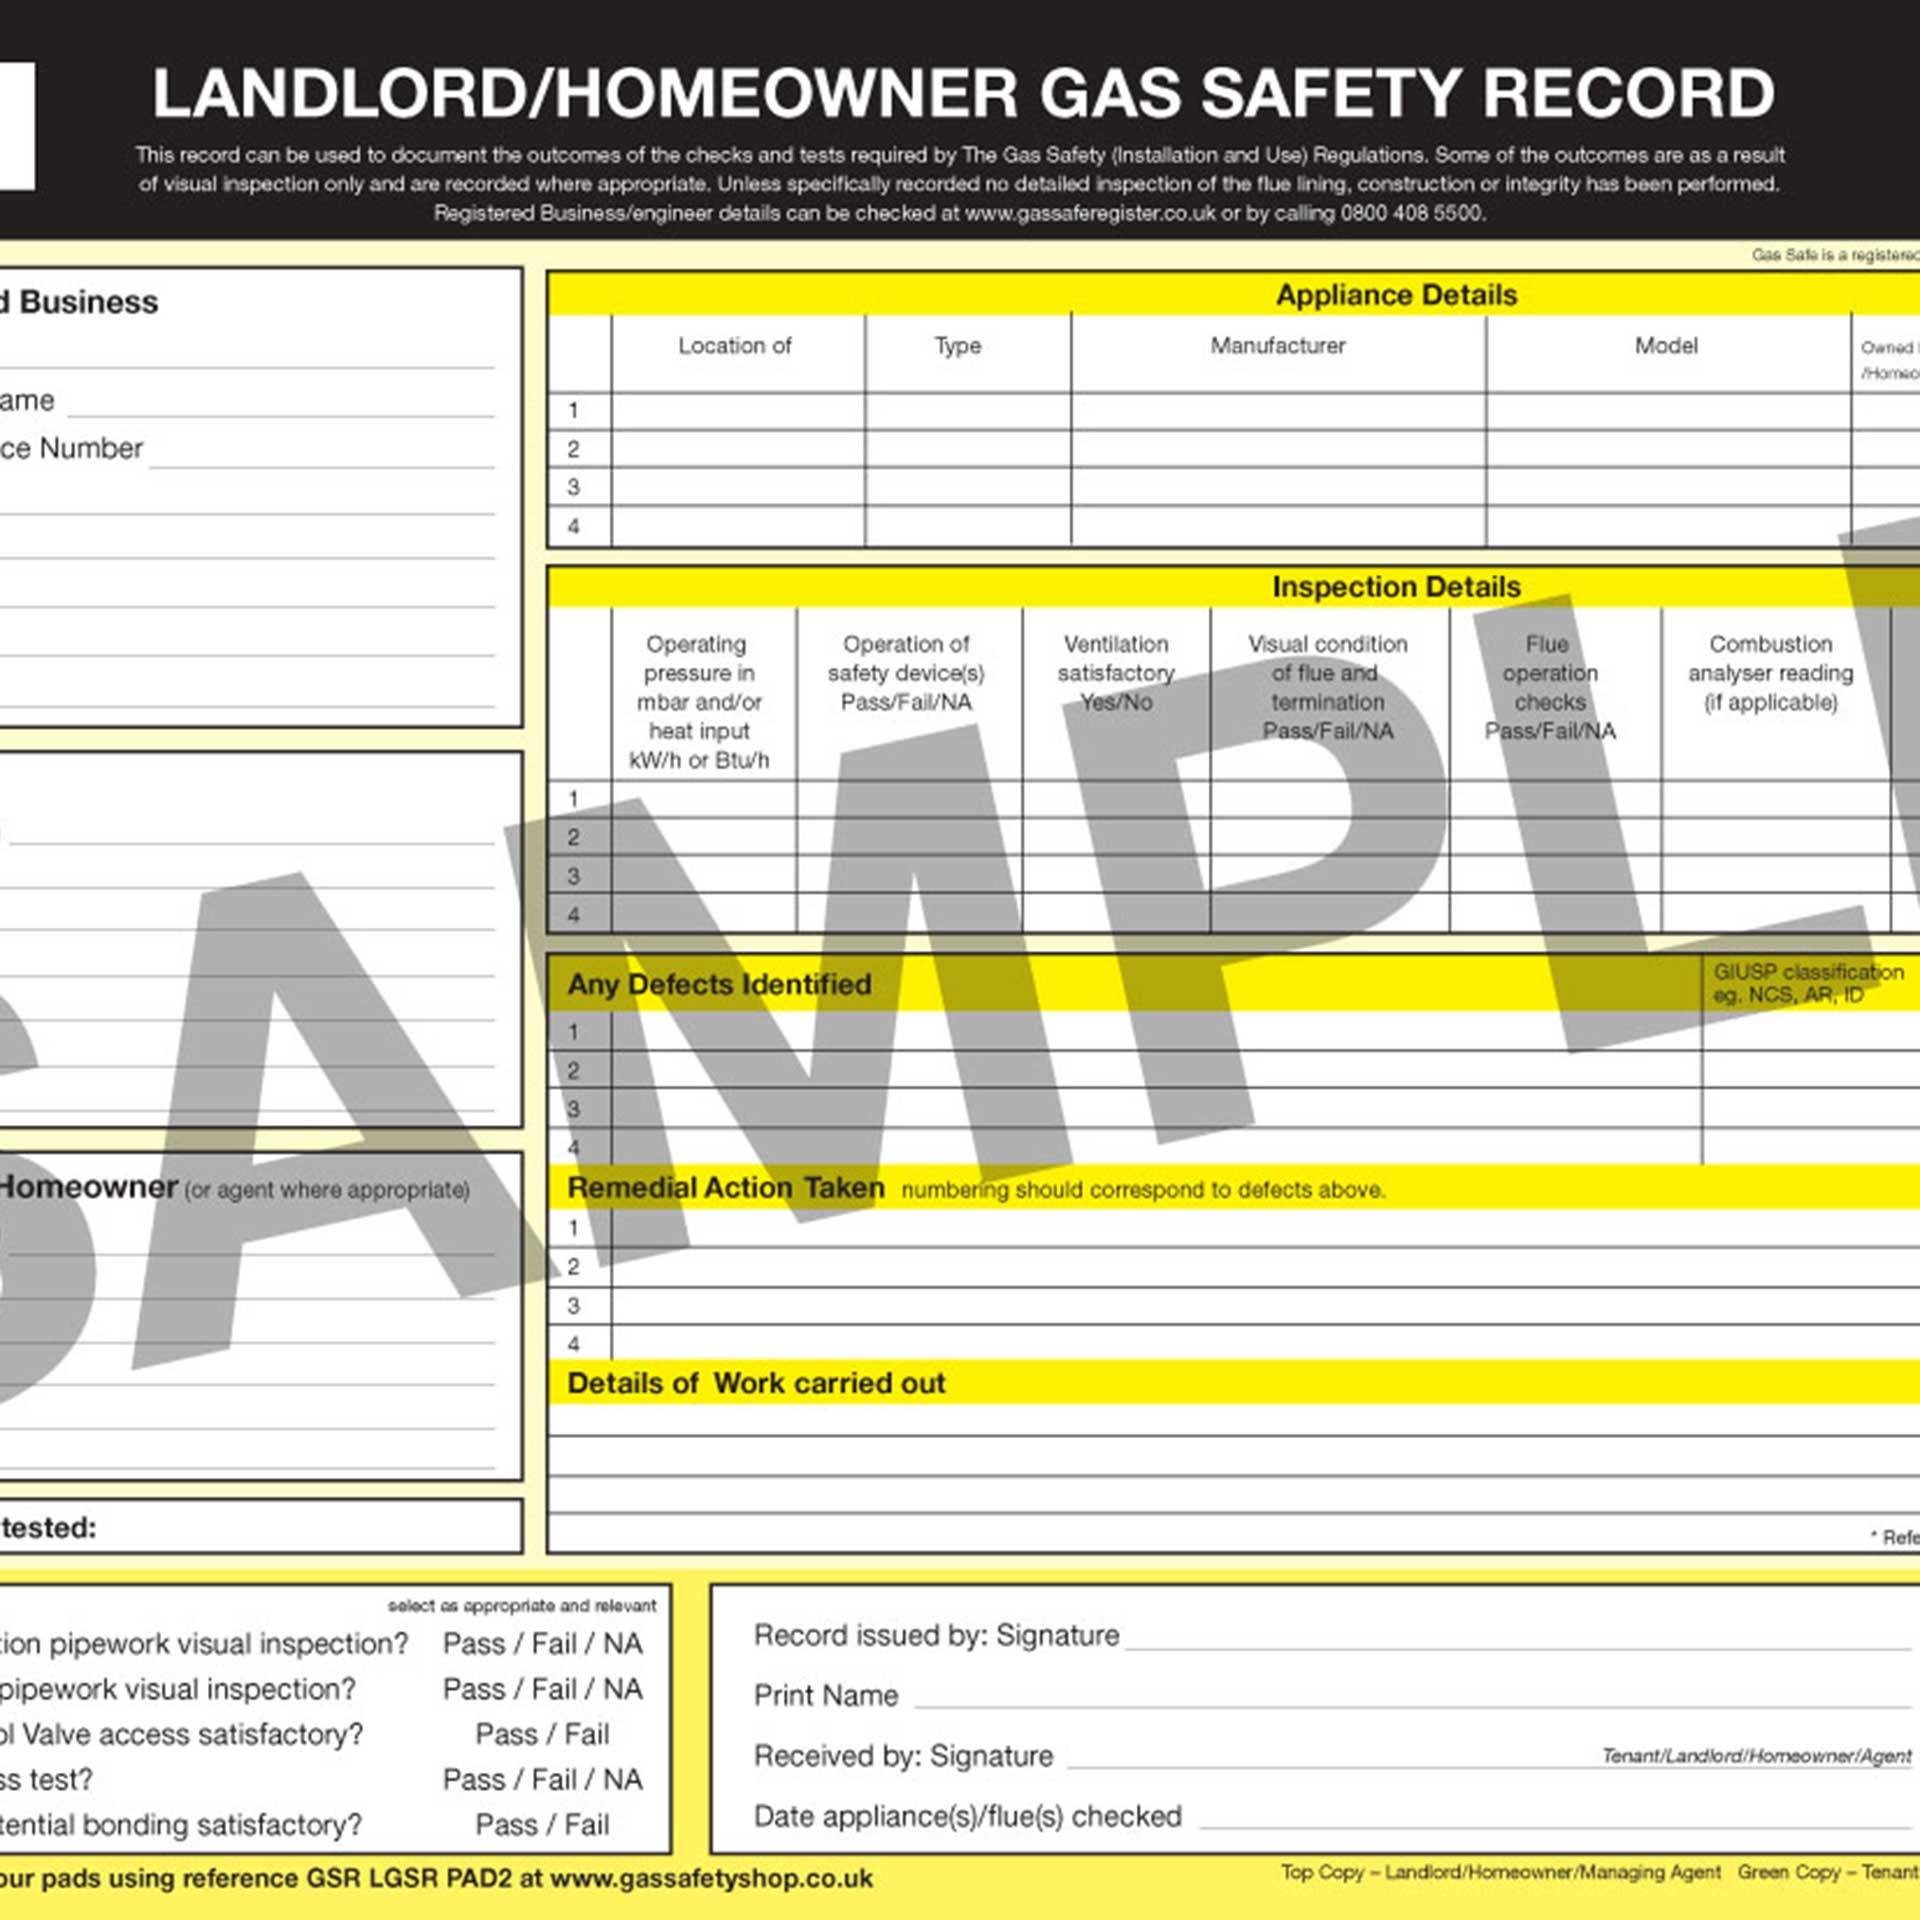 Landlord Gas Safety Certificate image